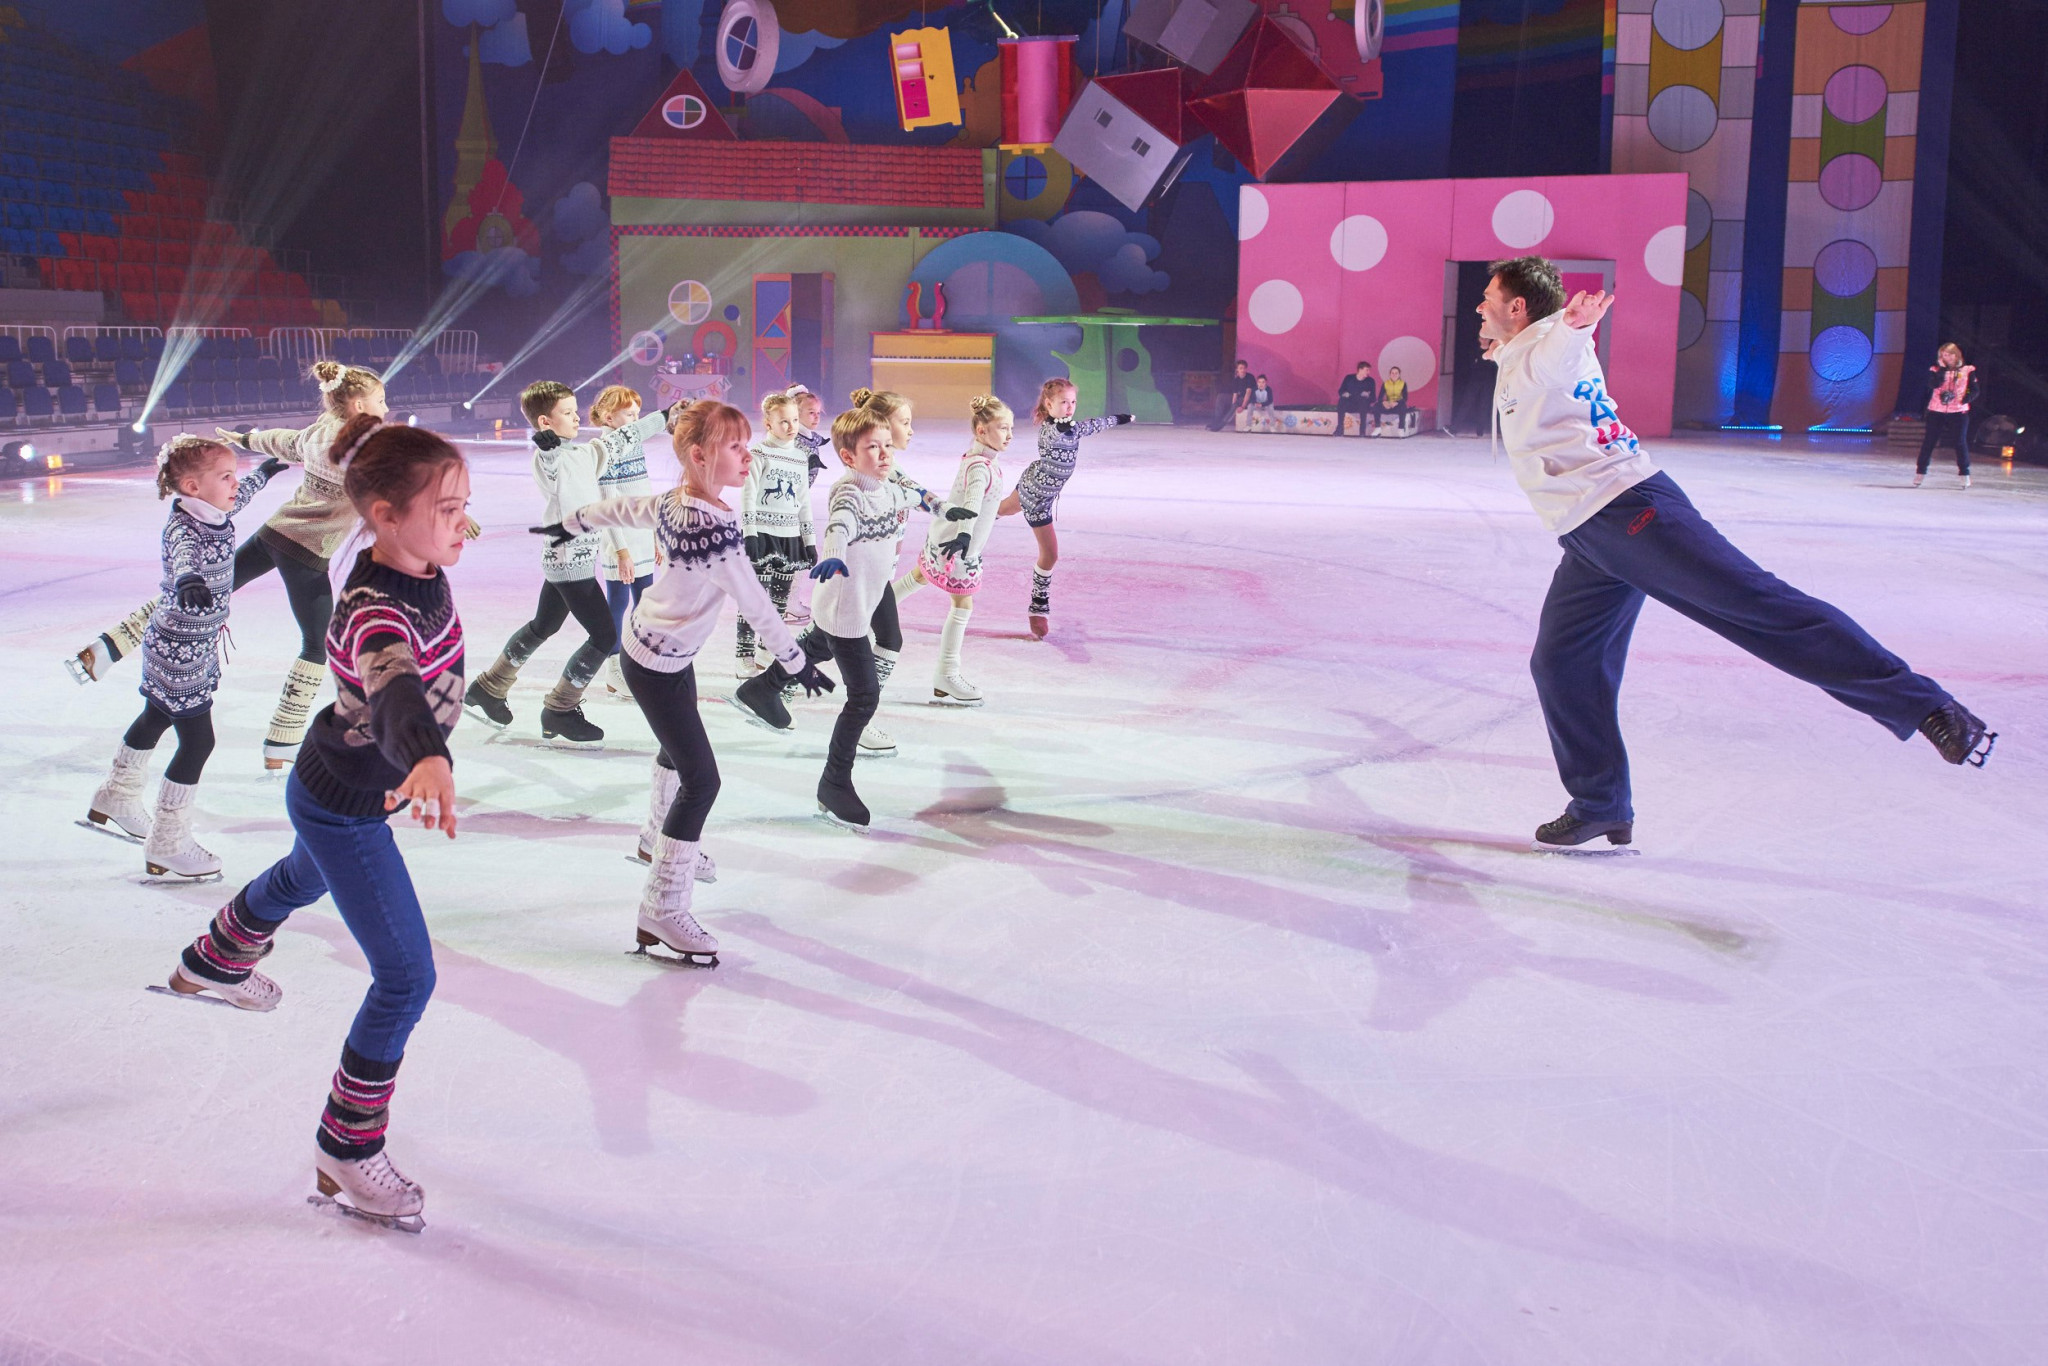 December 22 will see a performance by 50 pairs of dancers on the ice rink in Sokolniki Park ©Krasnoyarsk 2019